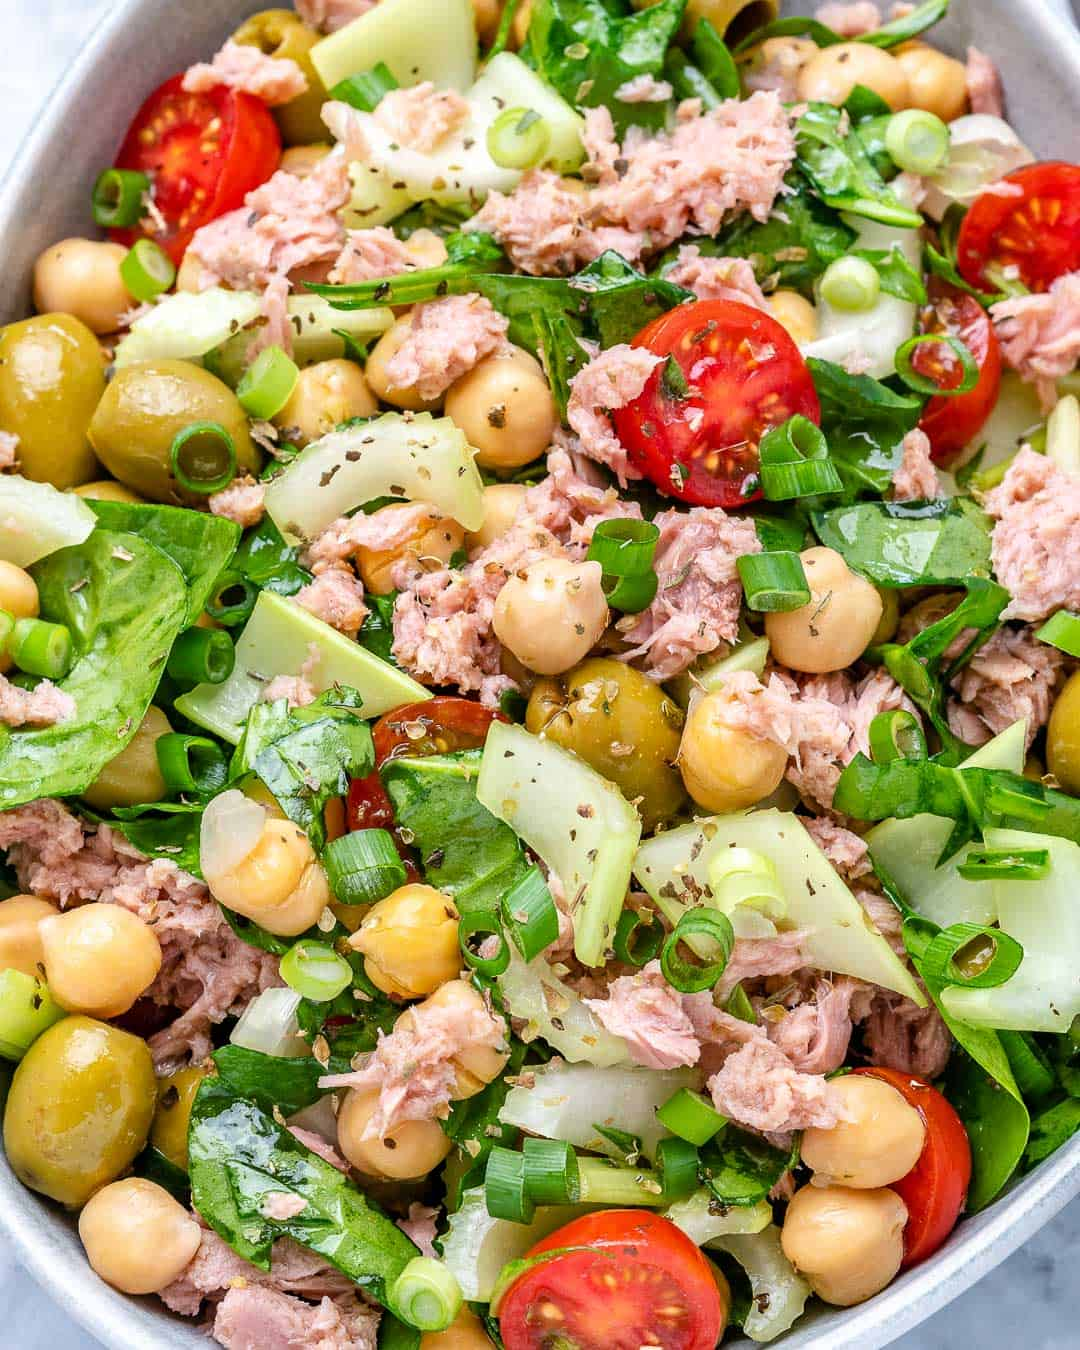 healthy chickpea and tuna salad recipe with tomatoes, celery, and olived